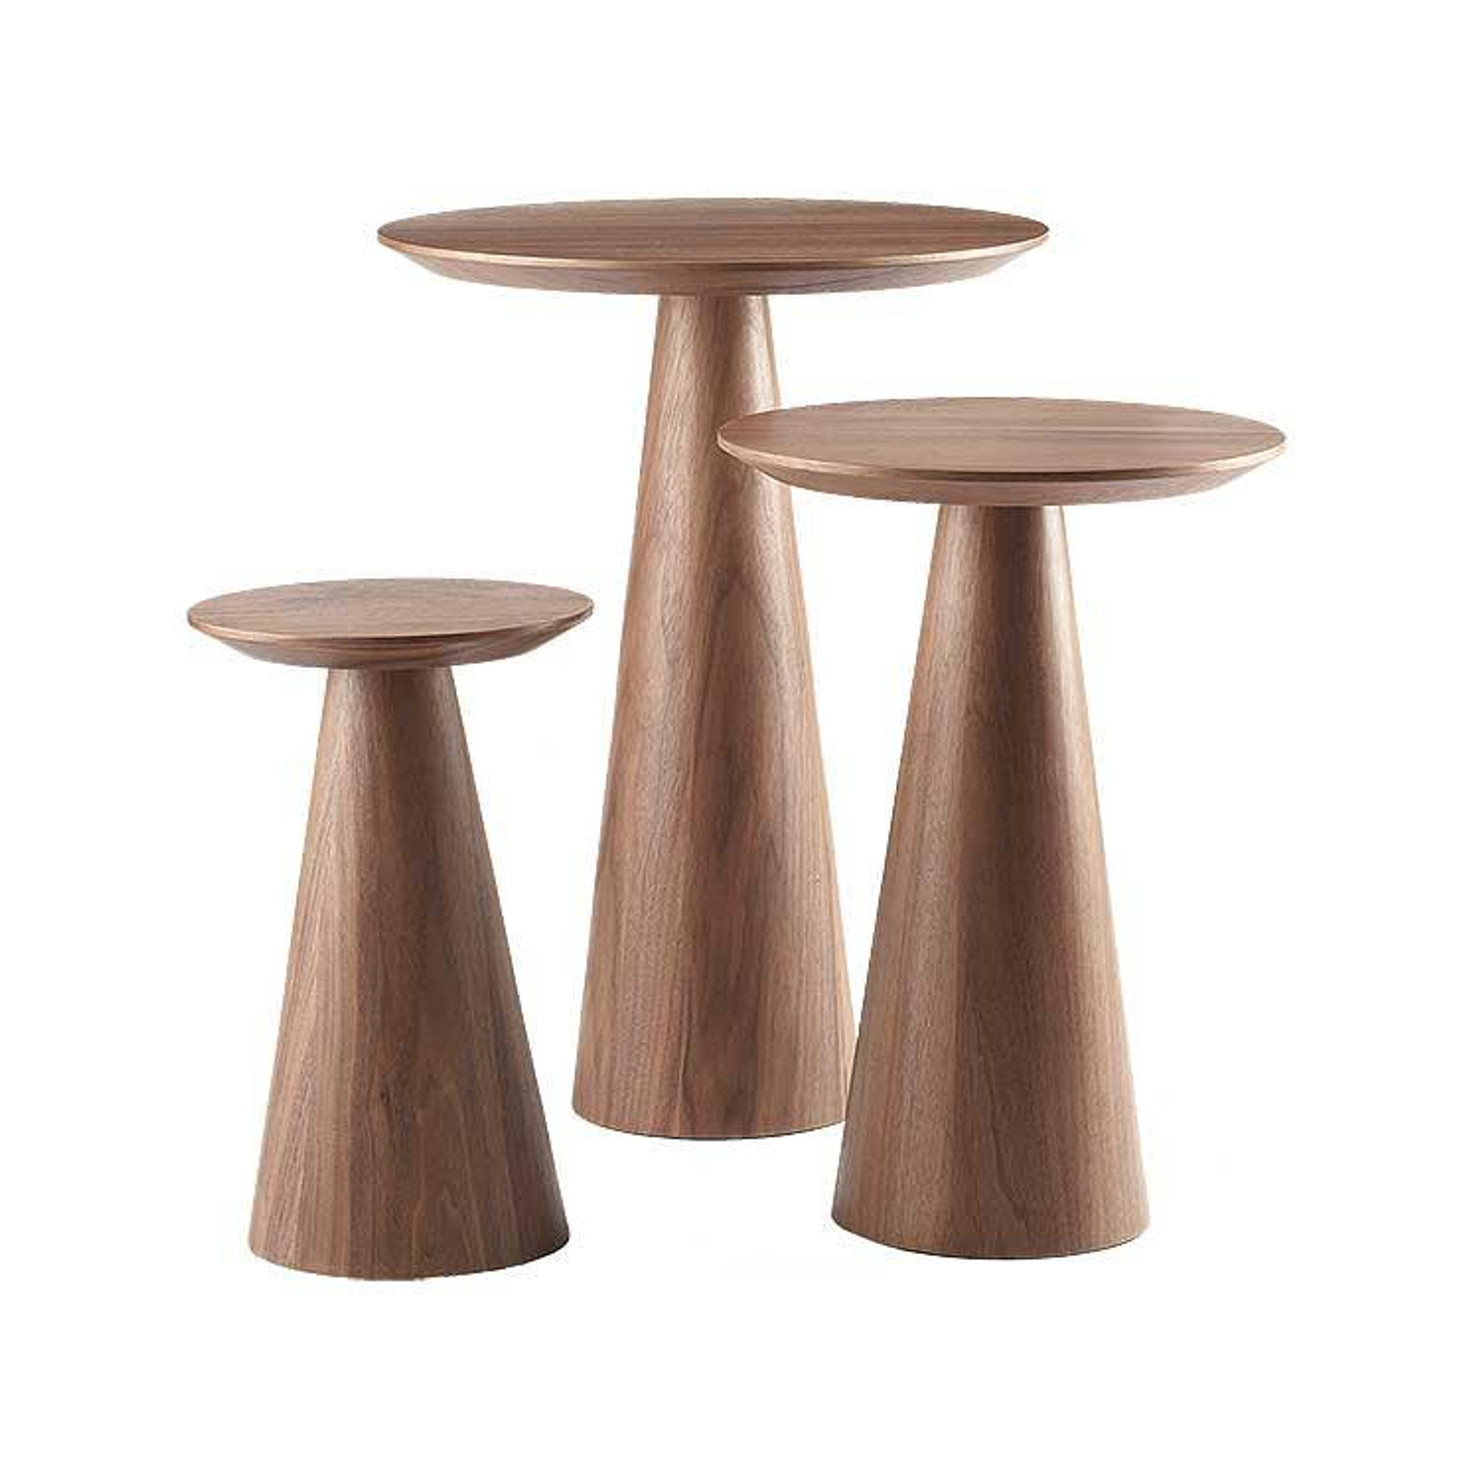 Modern, Bold, Fun, Unique Accent Table, End Table & Pedestal